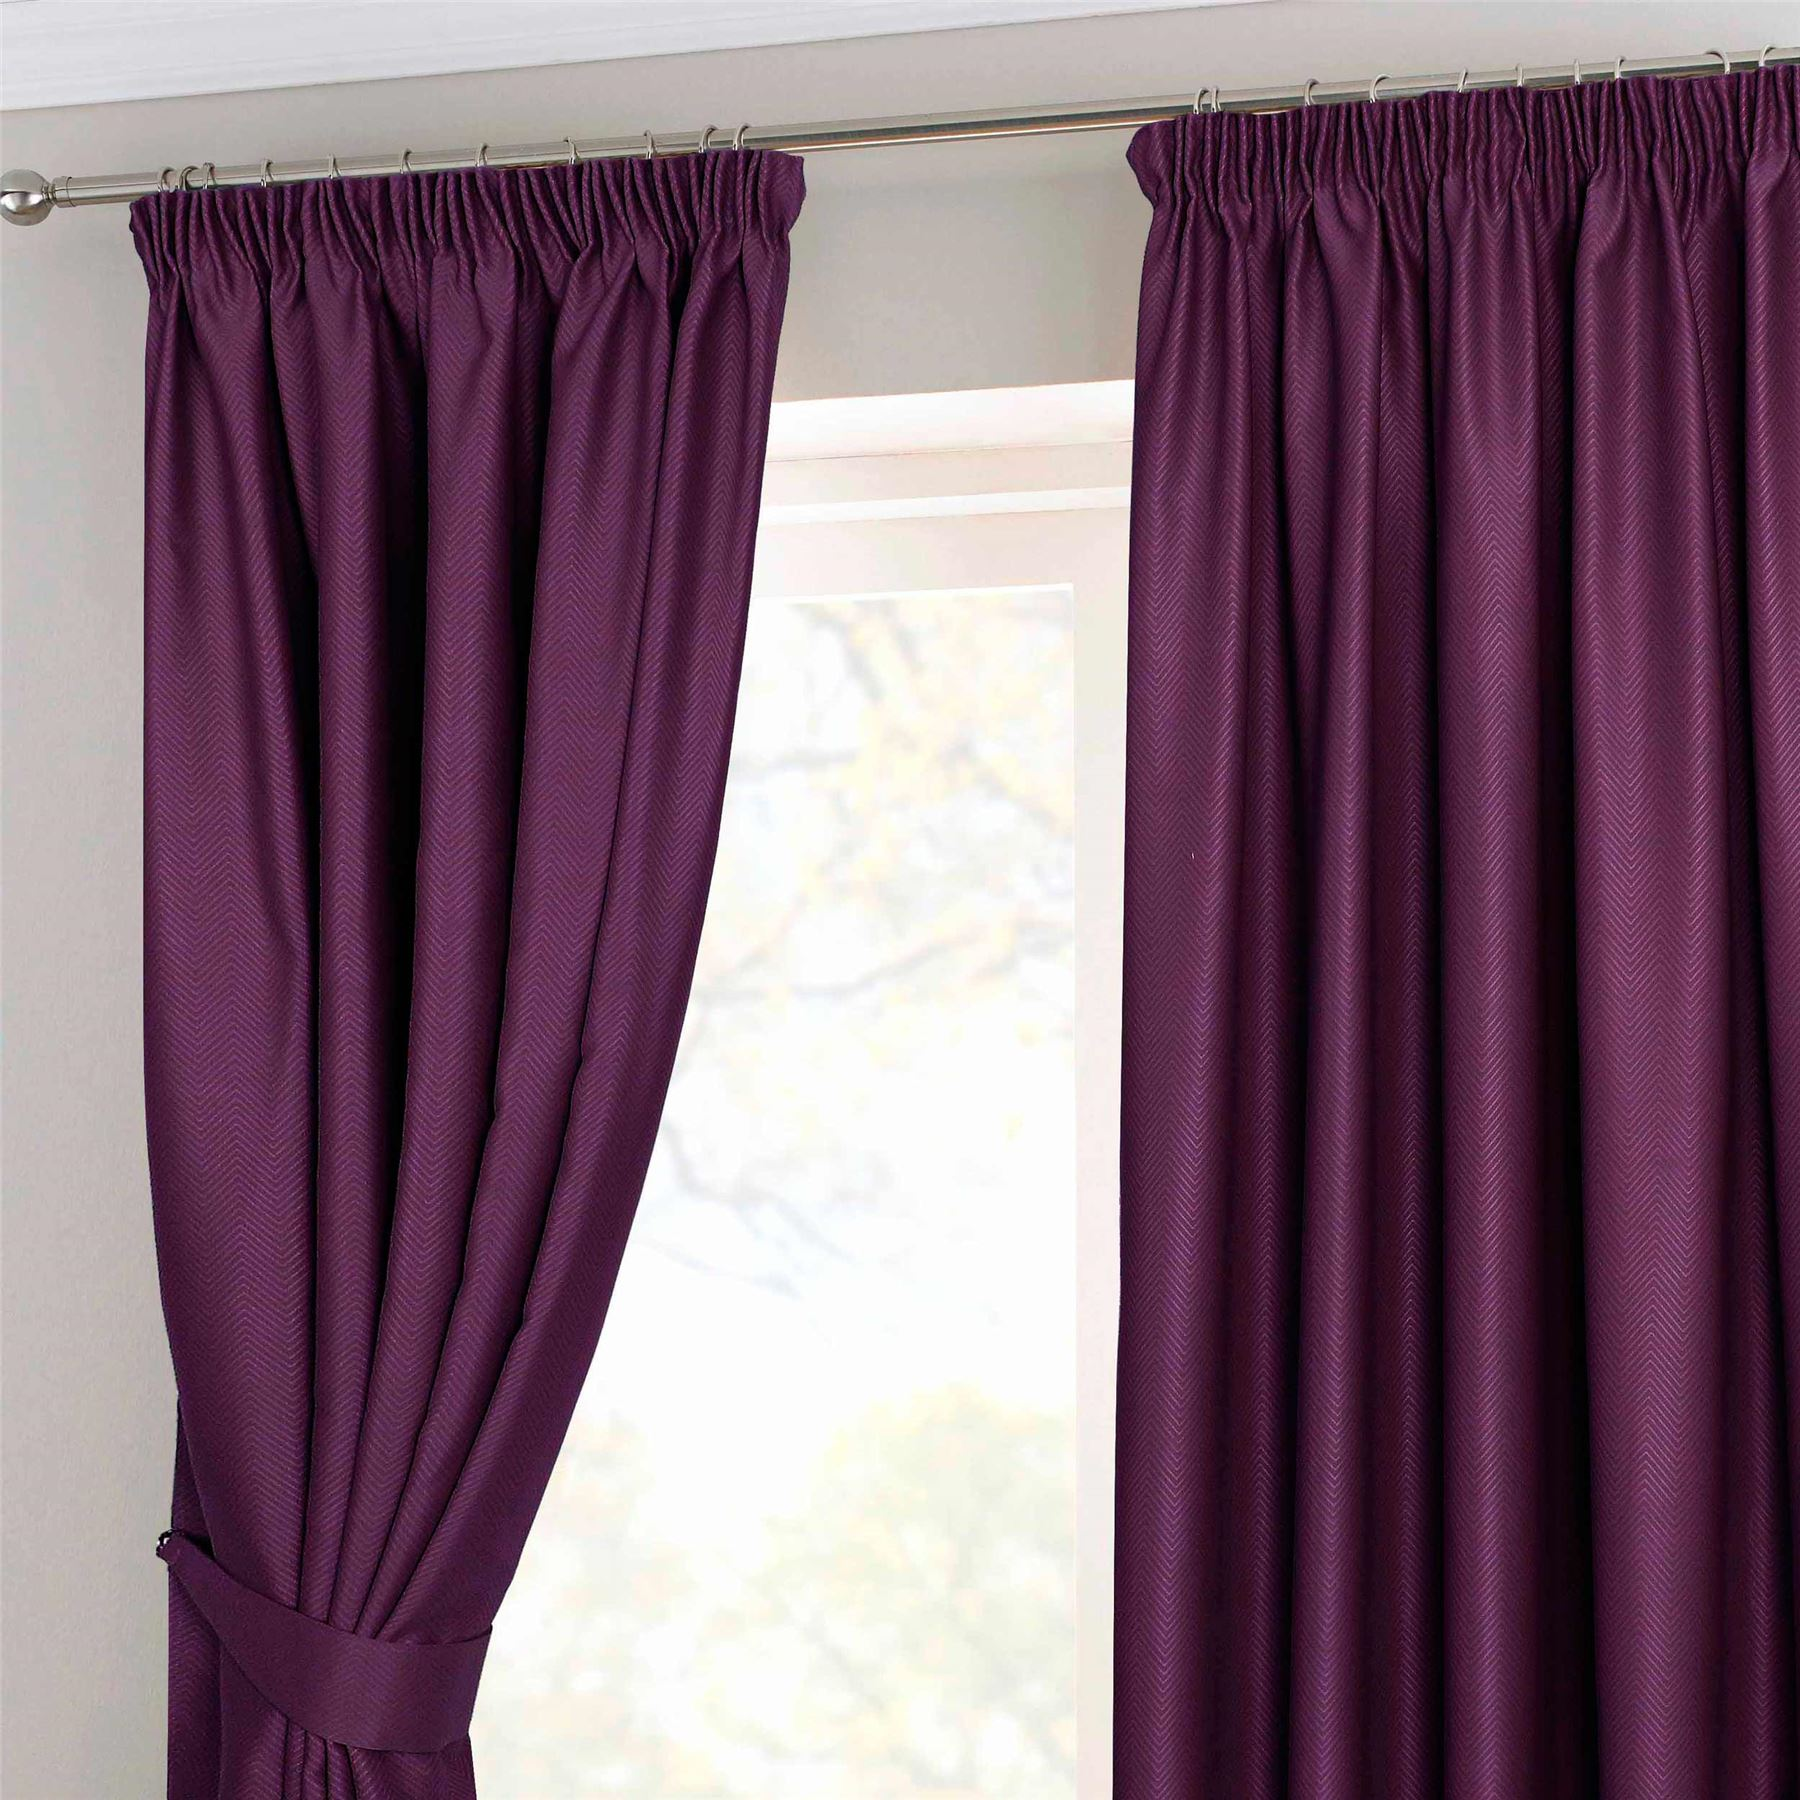 curtains made group faux hamilton eyelet mcbride lined ready by plain readymade ring textiles products top suede grey curtain ringtop